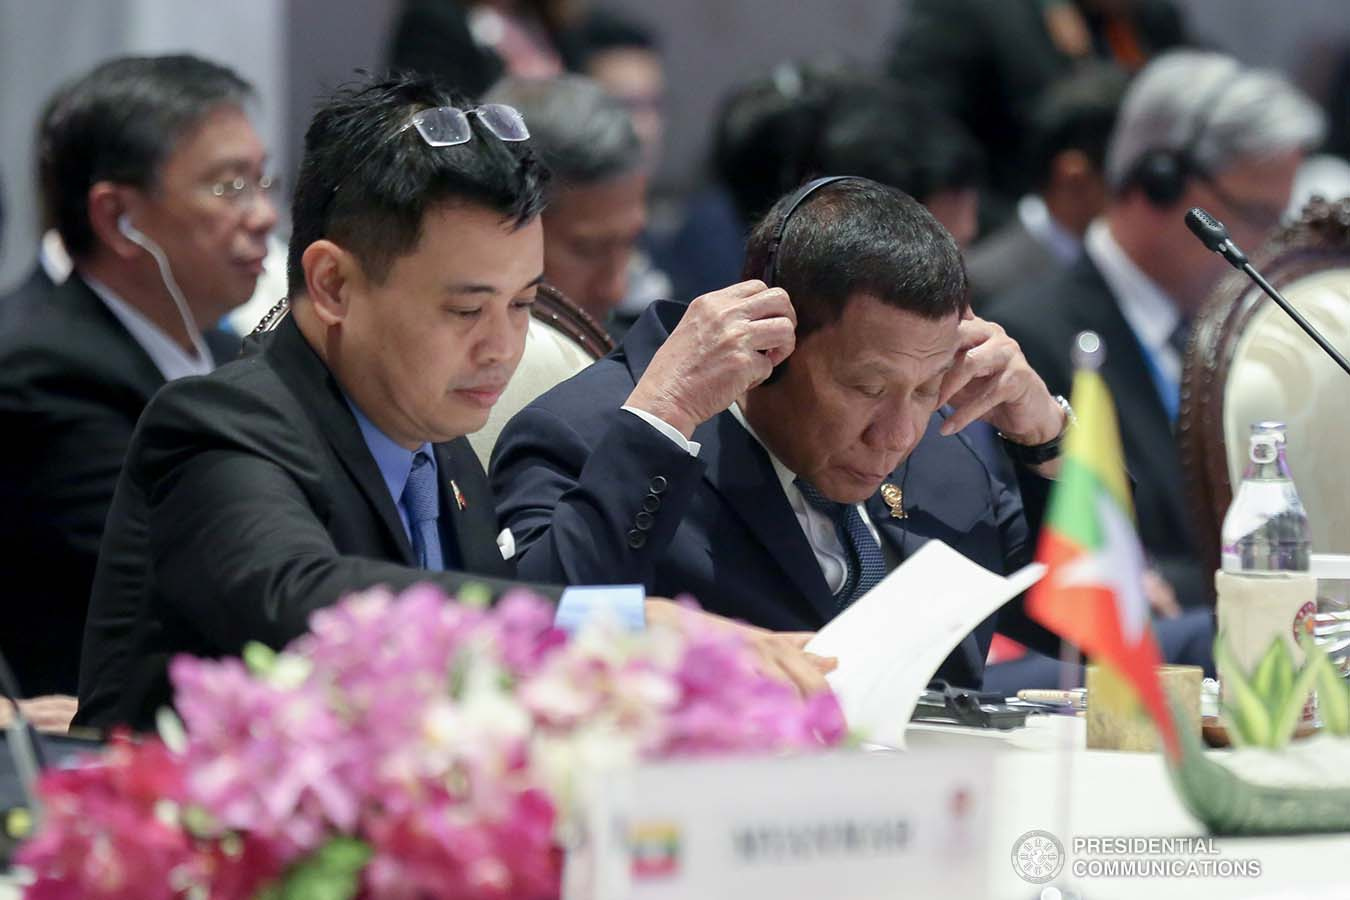 President Rodrigo Roa Duterte joins other leaders from the Association of Southeast Asian Nations (ASEAN) member countries and Prime Minister of Japan Shinzo Abe during the 22nd ASEAN-Japan Summit at the Impact Exhibition and Convention Center in Nonthaburi, Thailand on November 4, 2019. ALBERT ALCAIN/PRESIDENTIAL PHOTO